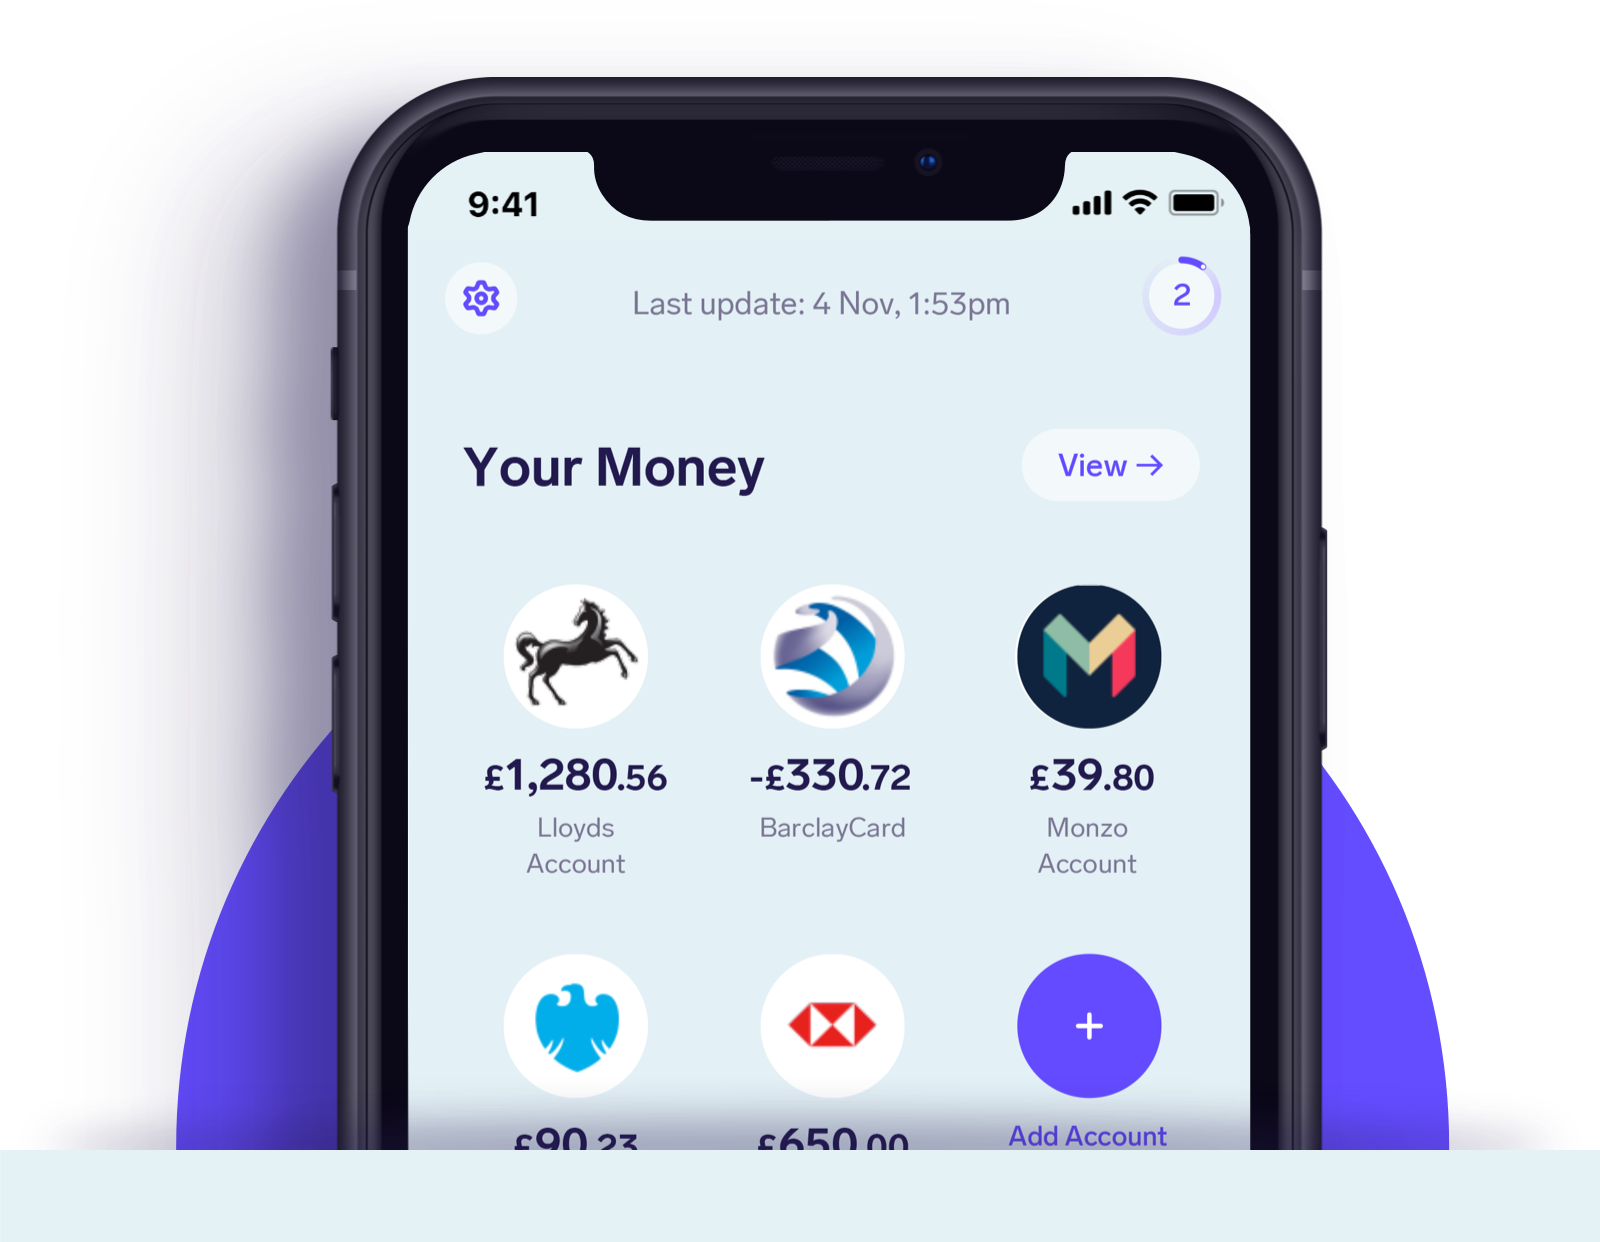 Home - Features | See all your bank accounts together - Image (Launch)